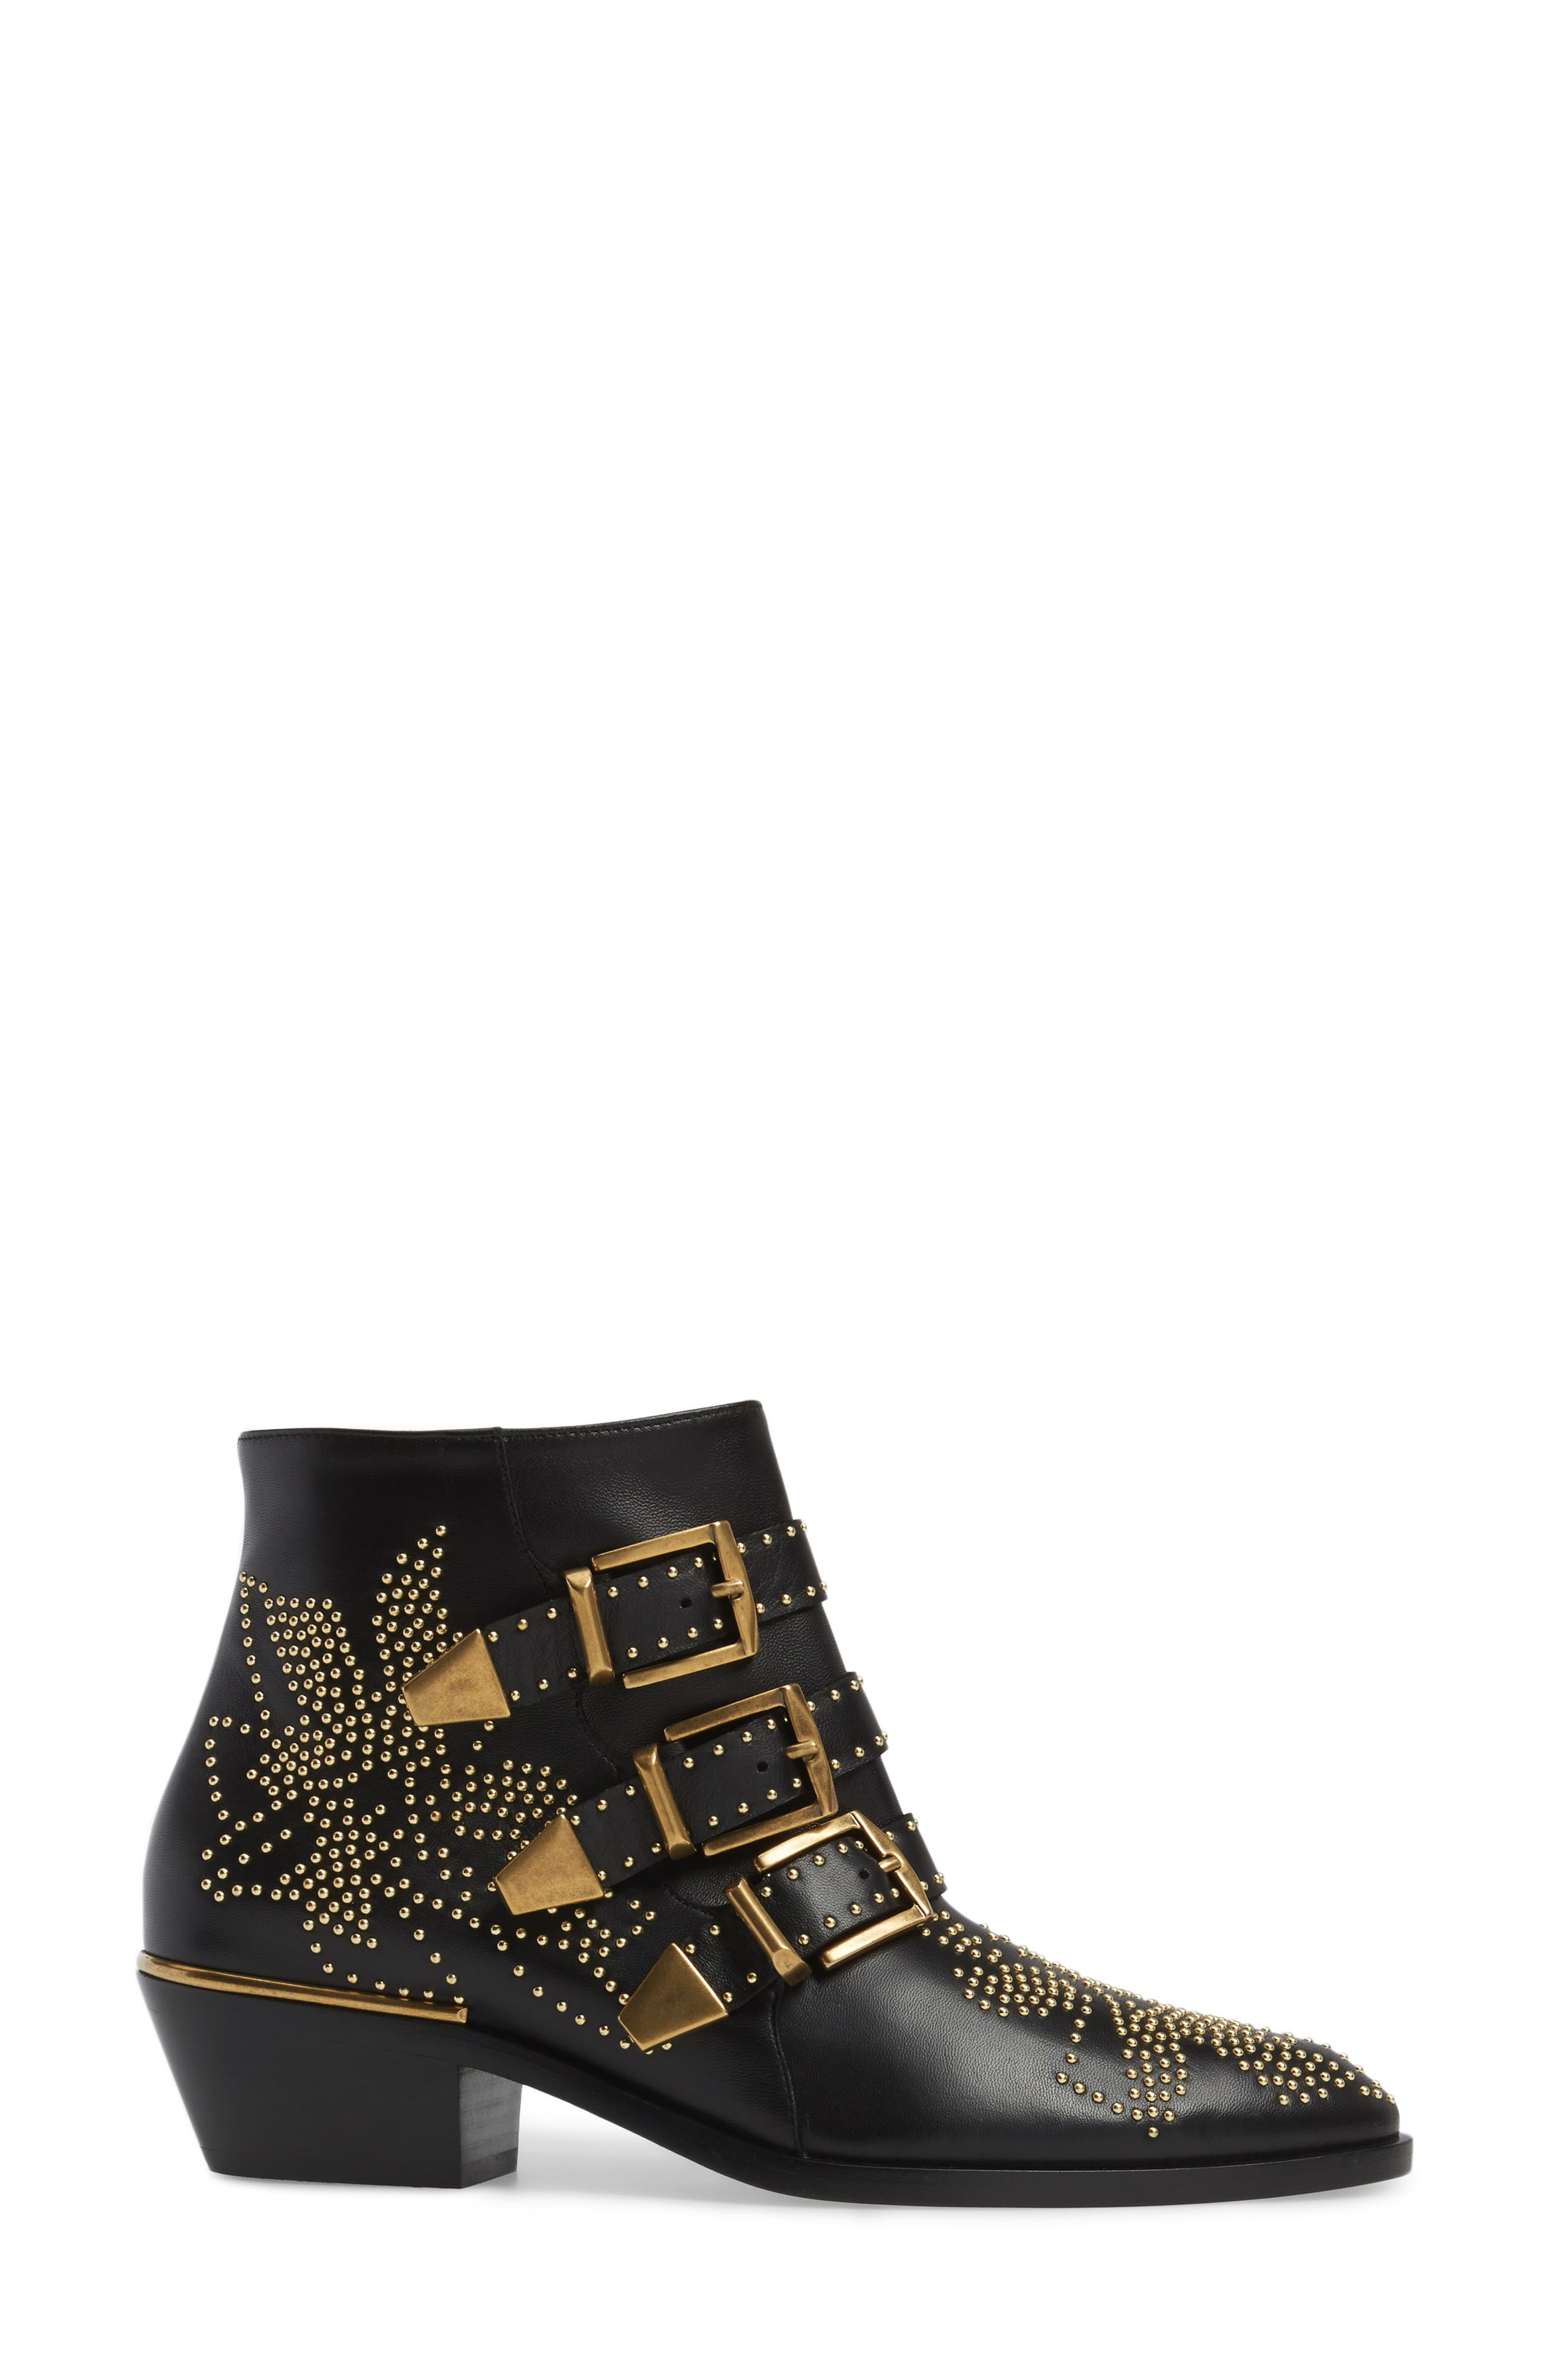 Alternate Image 3  - Chloé Susanna Stud Buckle Bootie (Women)